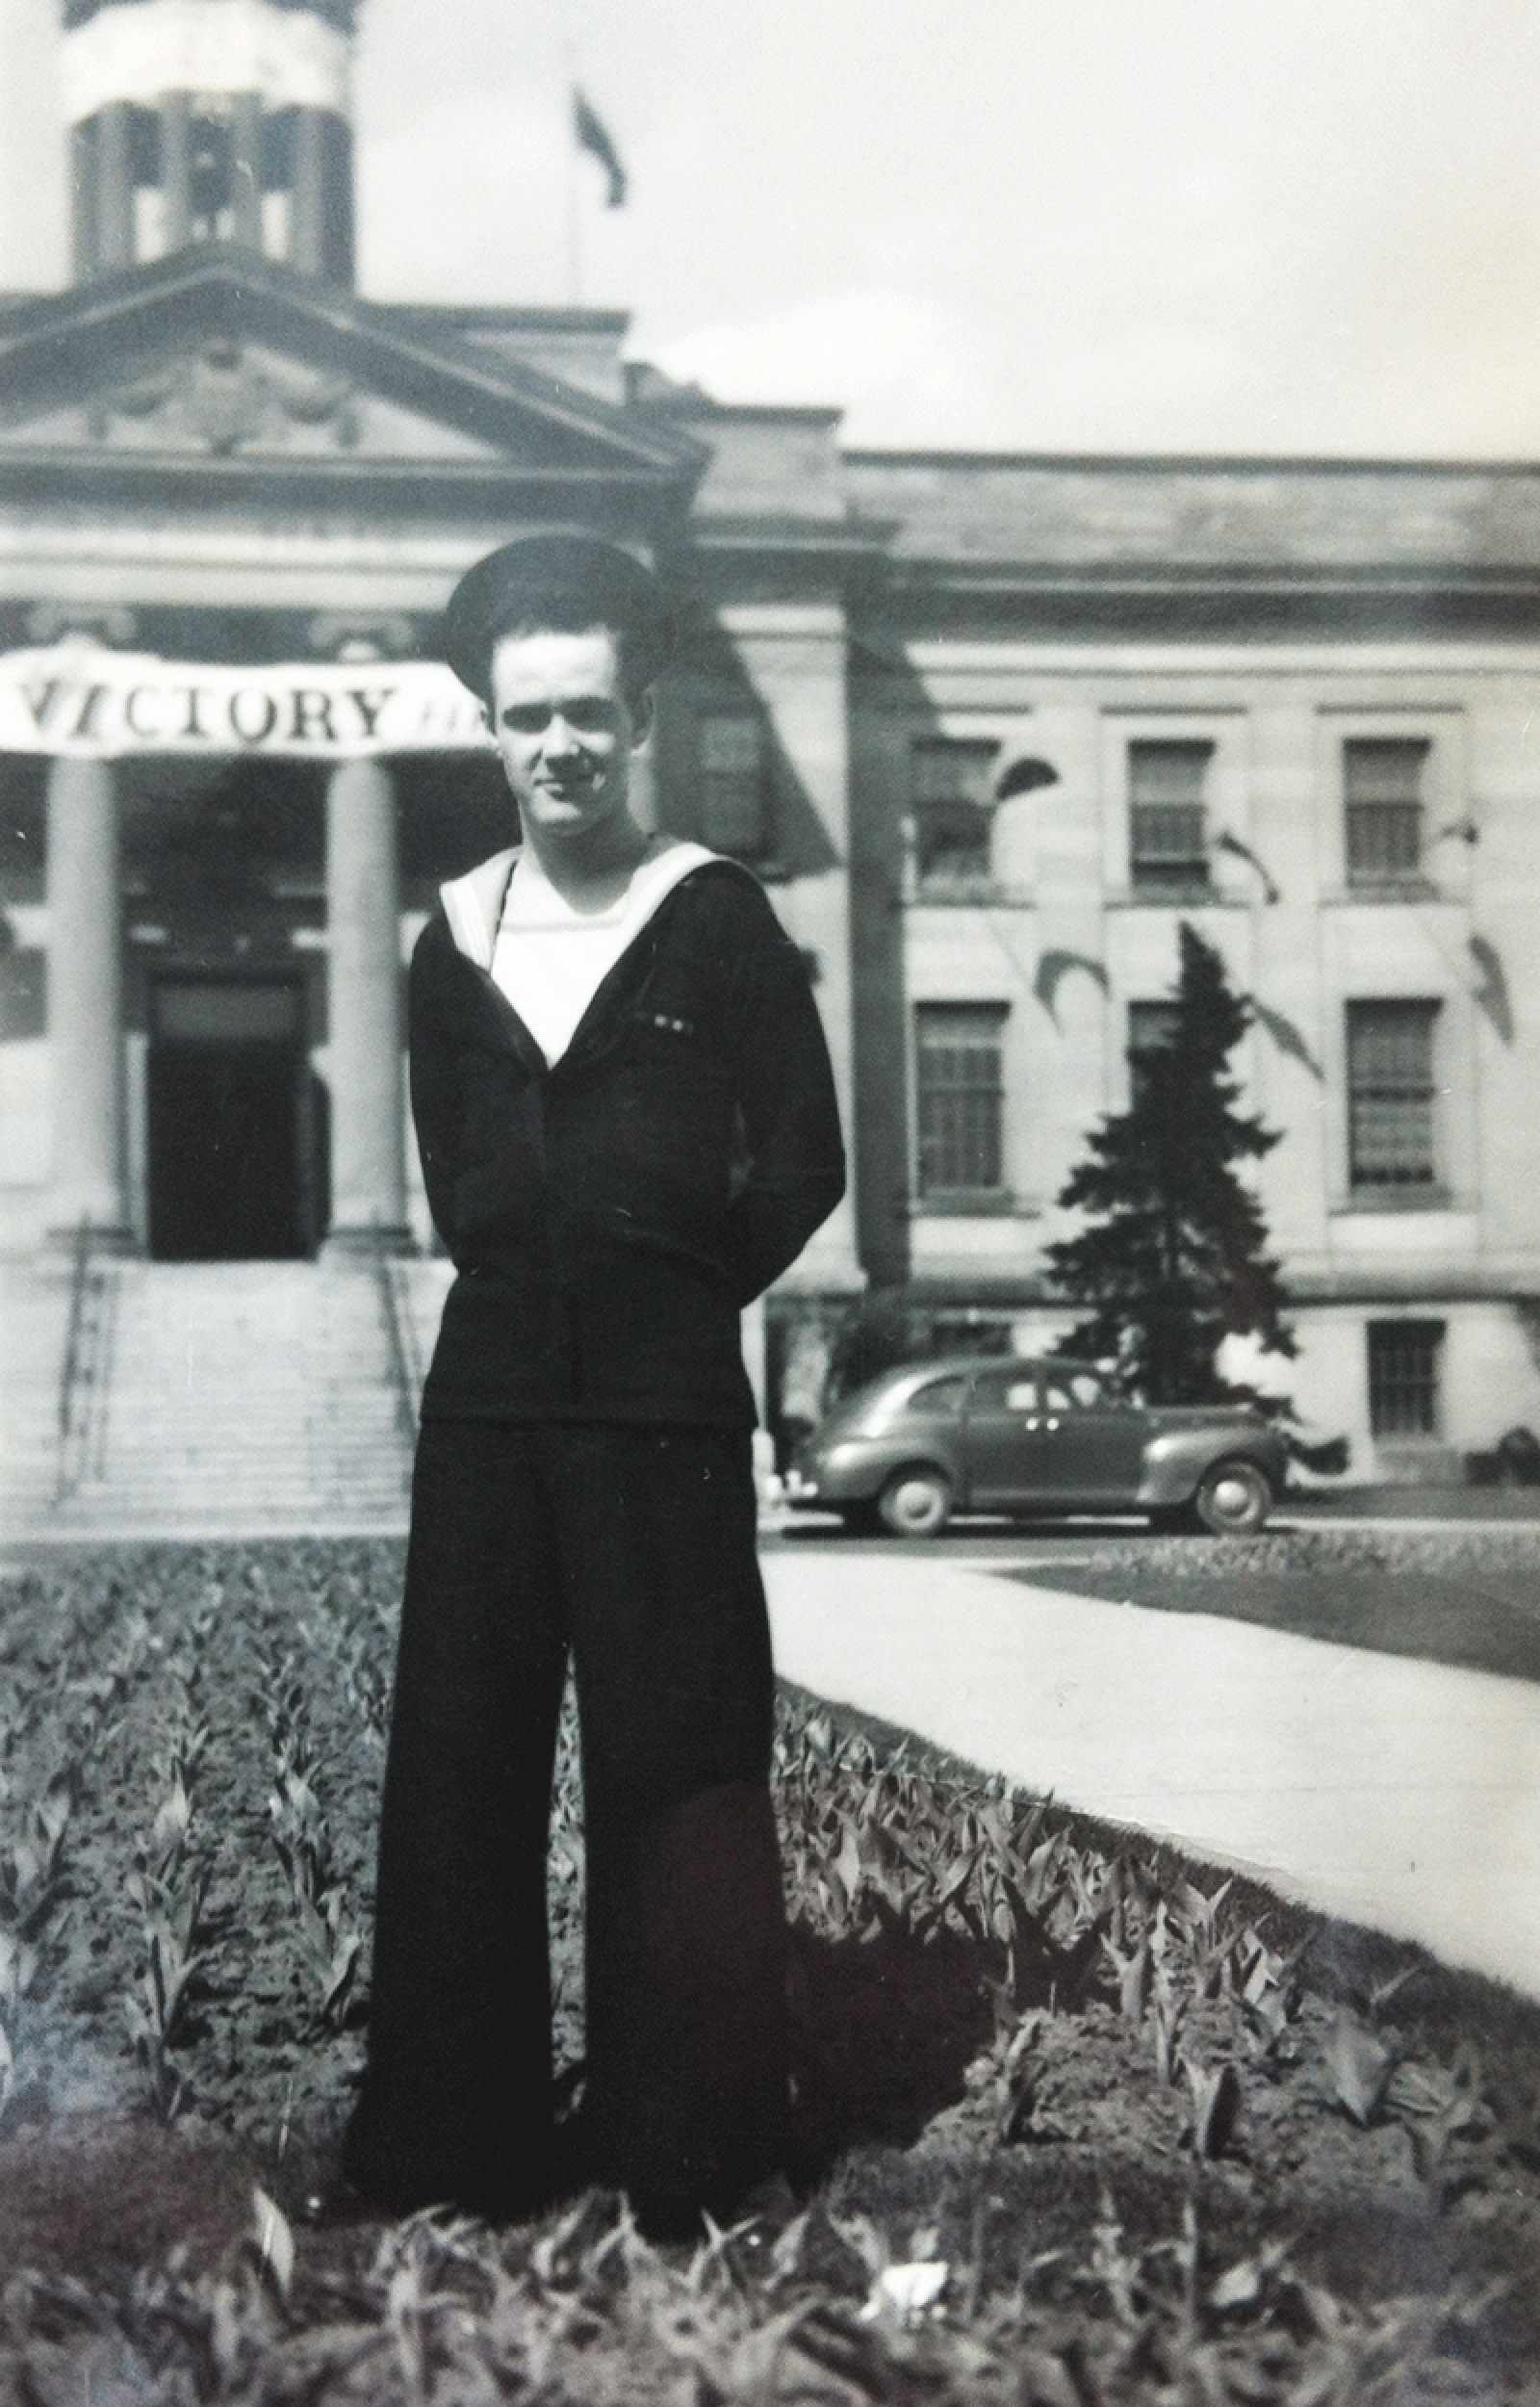 AB Harrison F. Stumpf in front of the Kitchener City Hall after the war.